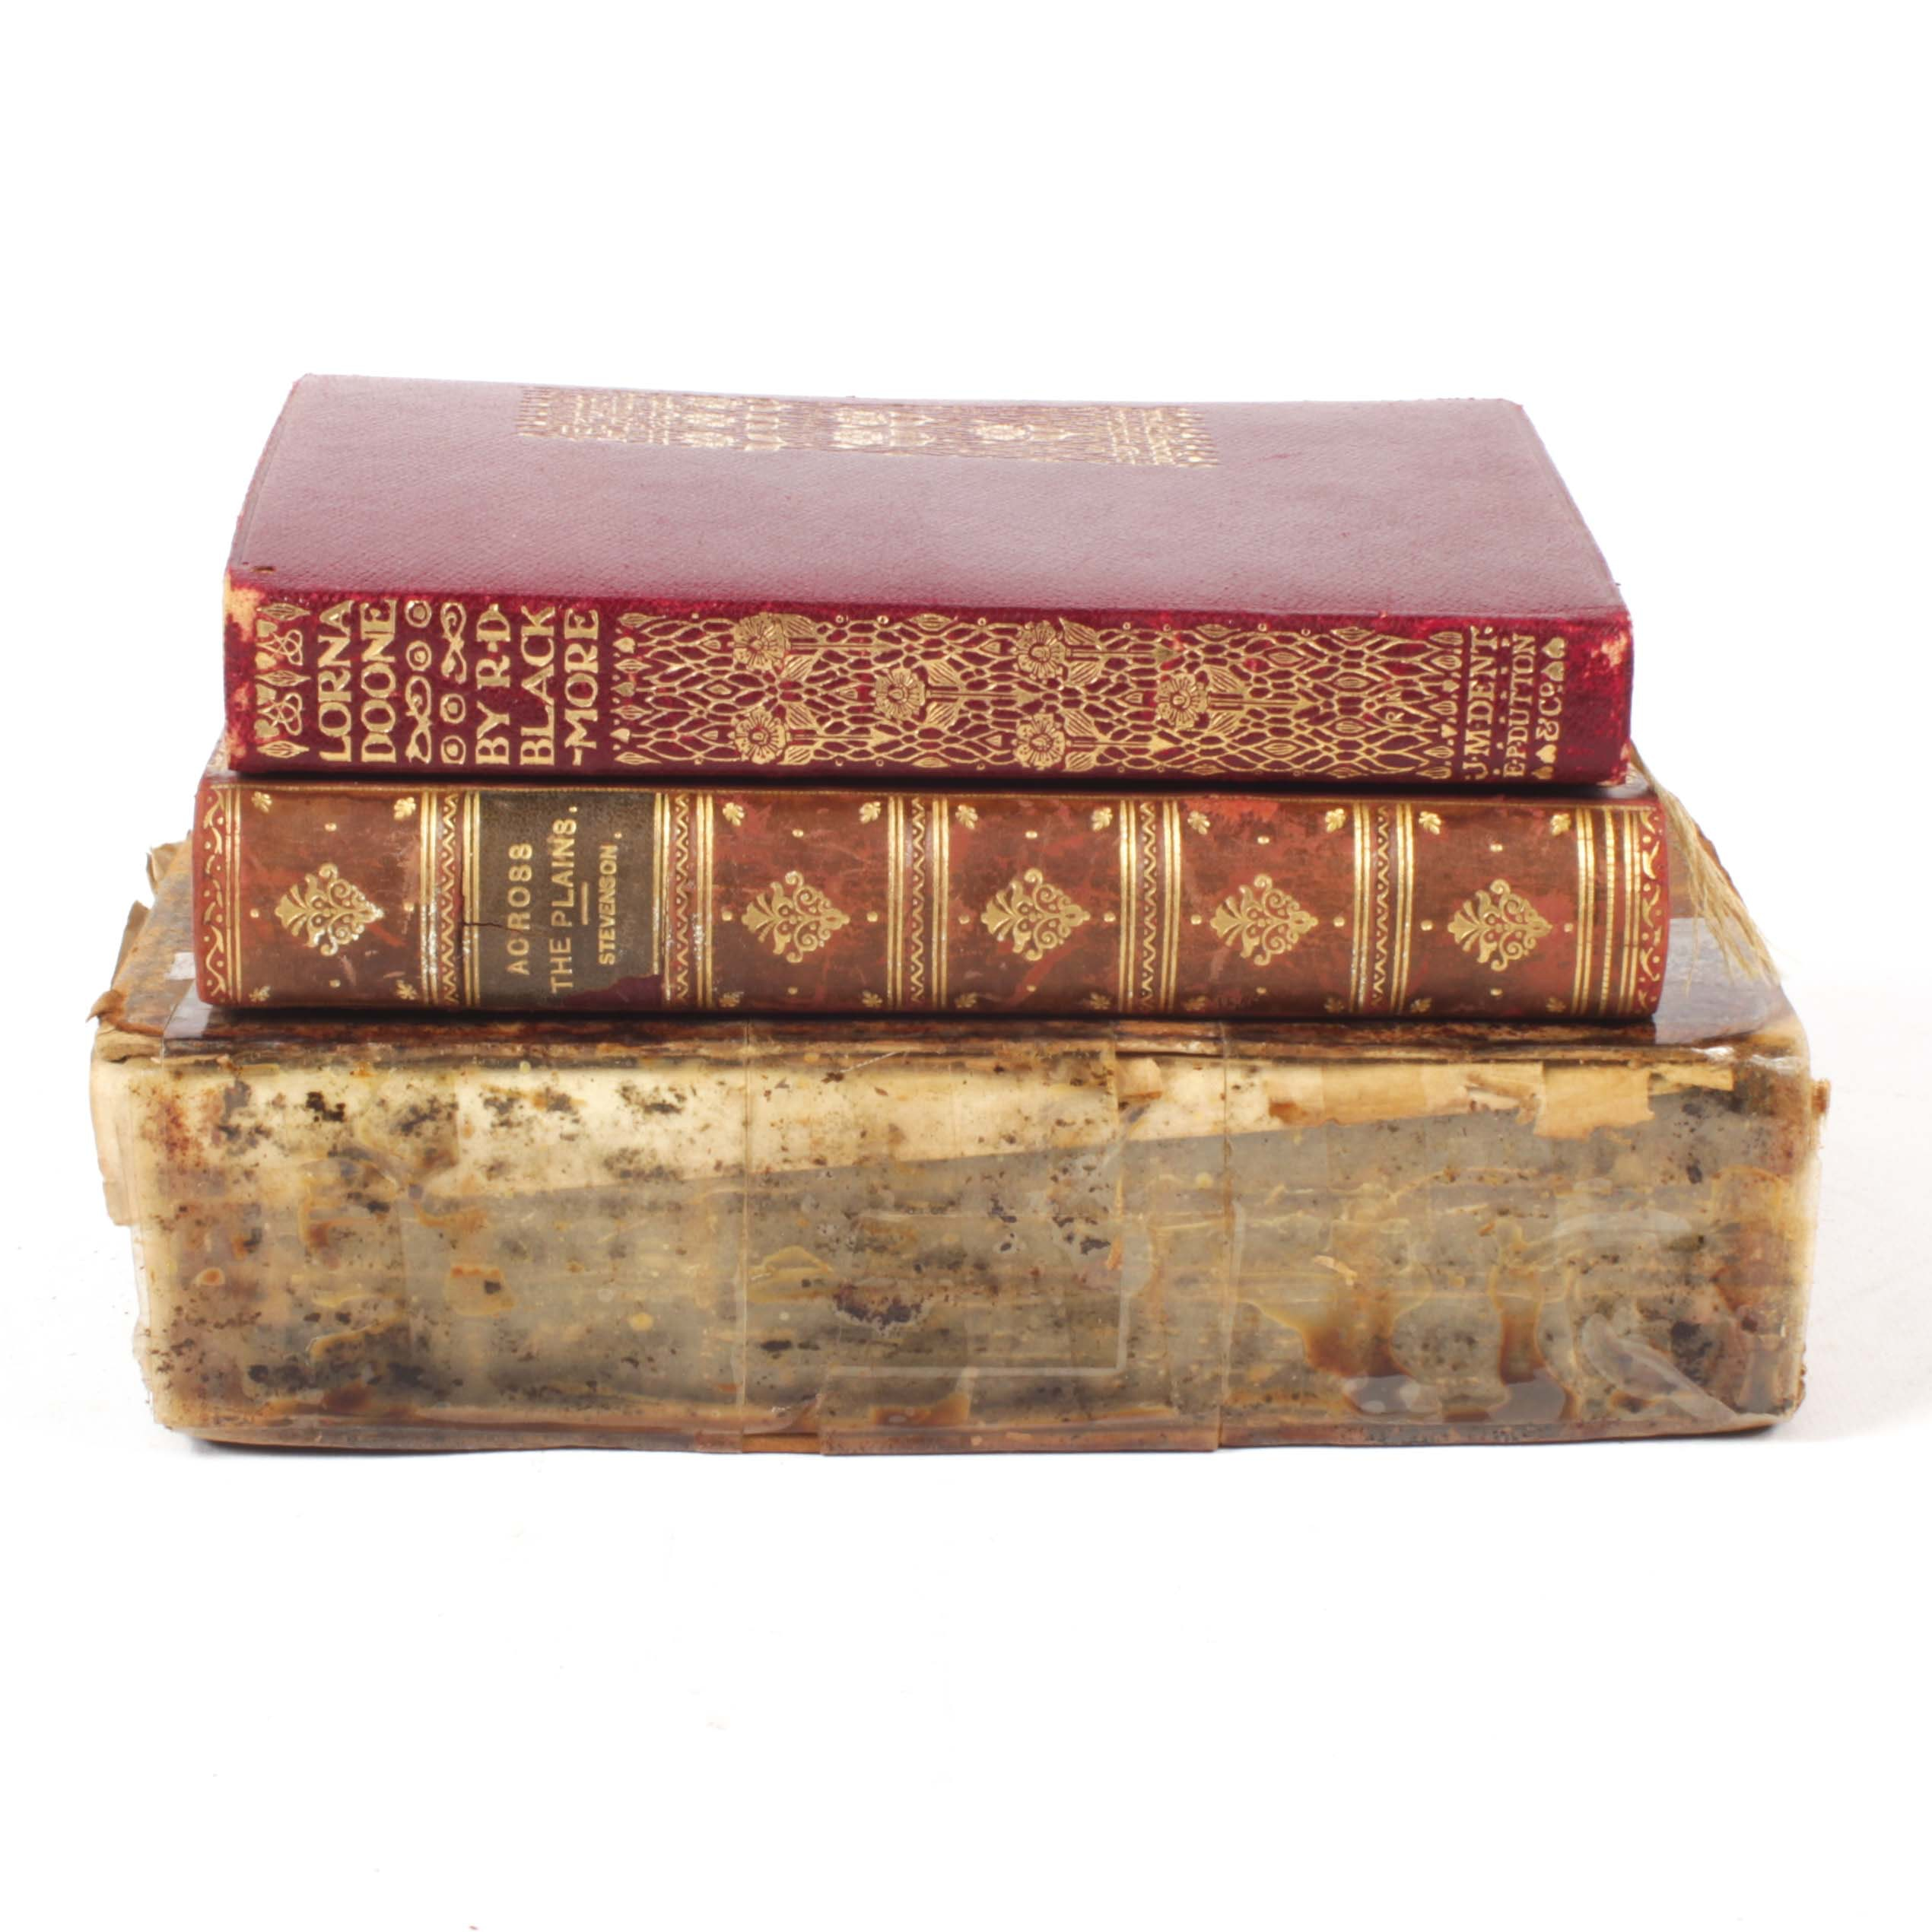 """Antique """"Lorna Doone"""" by R.D. Blackmore and More"""